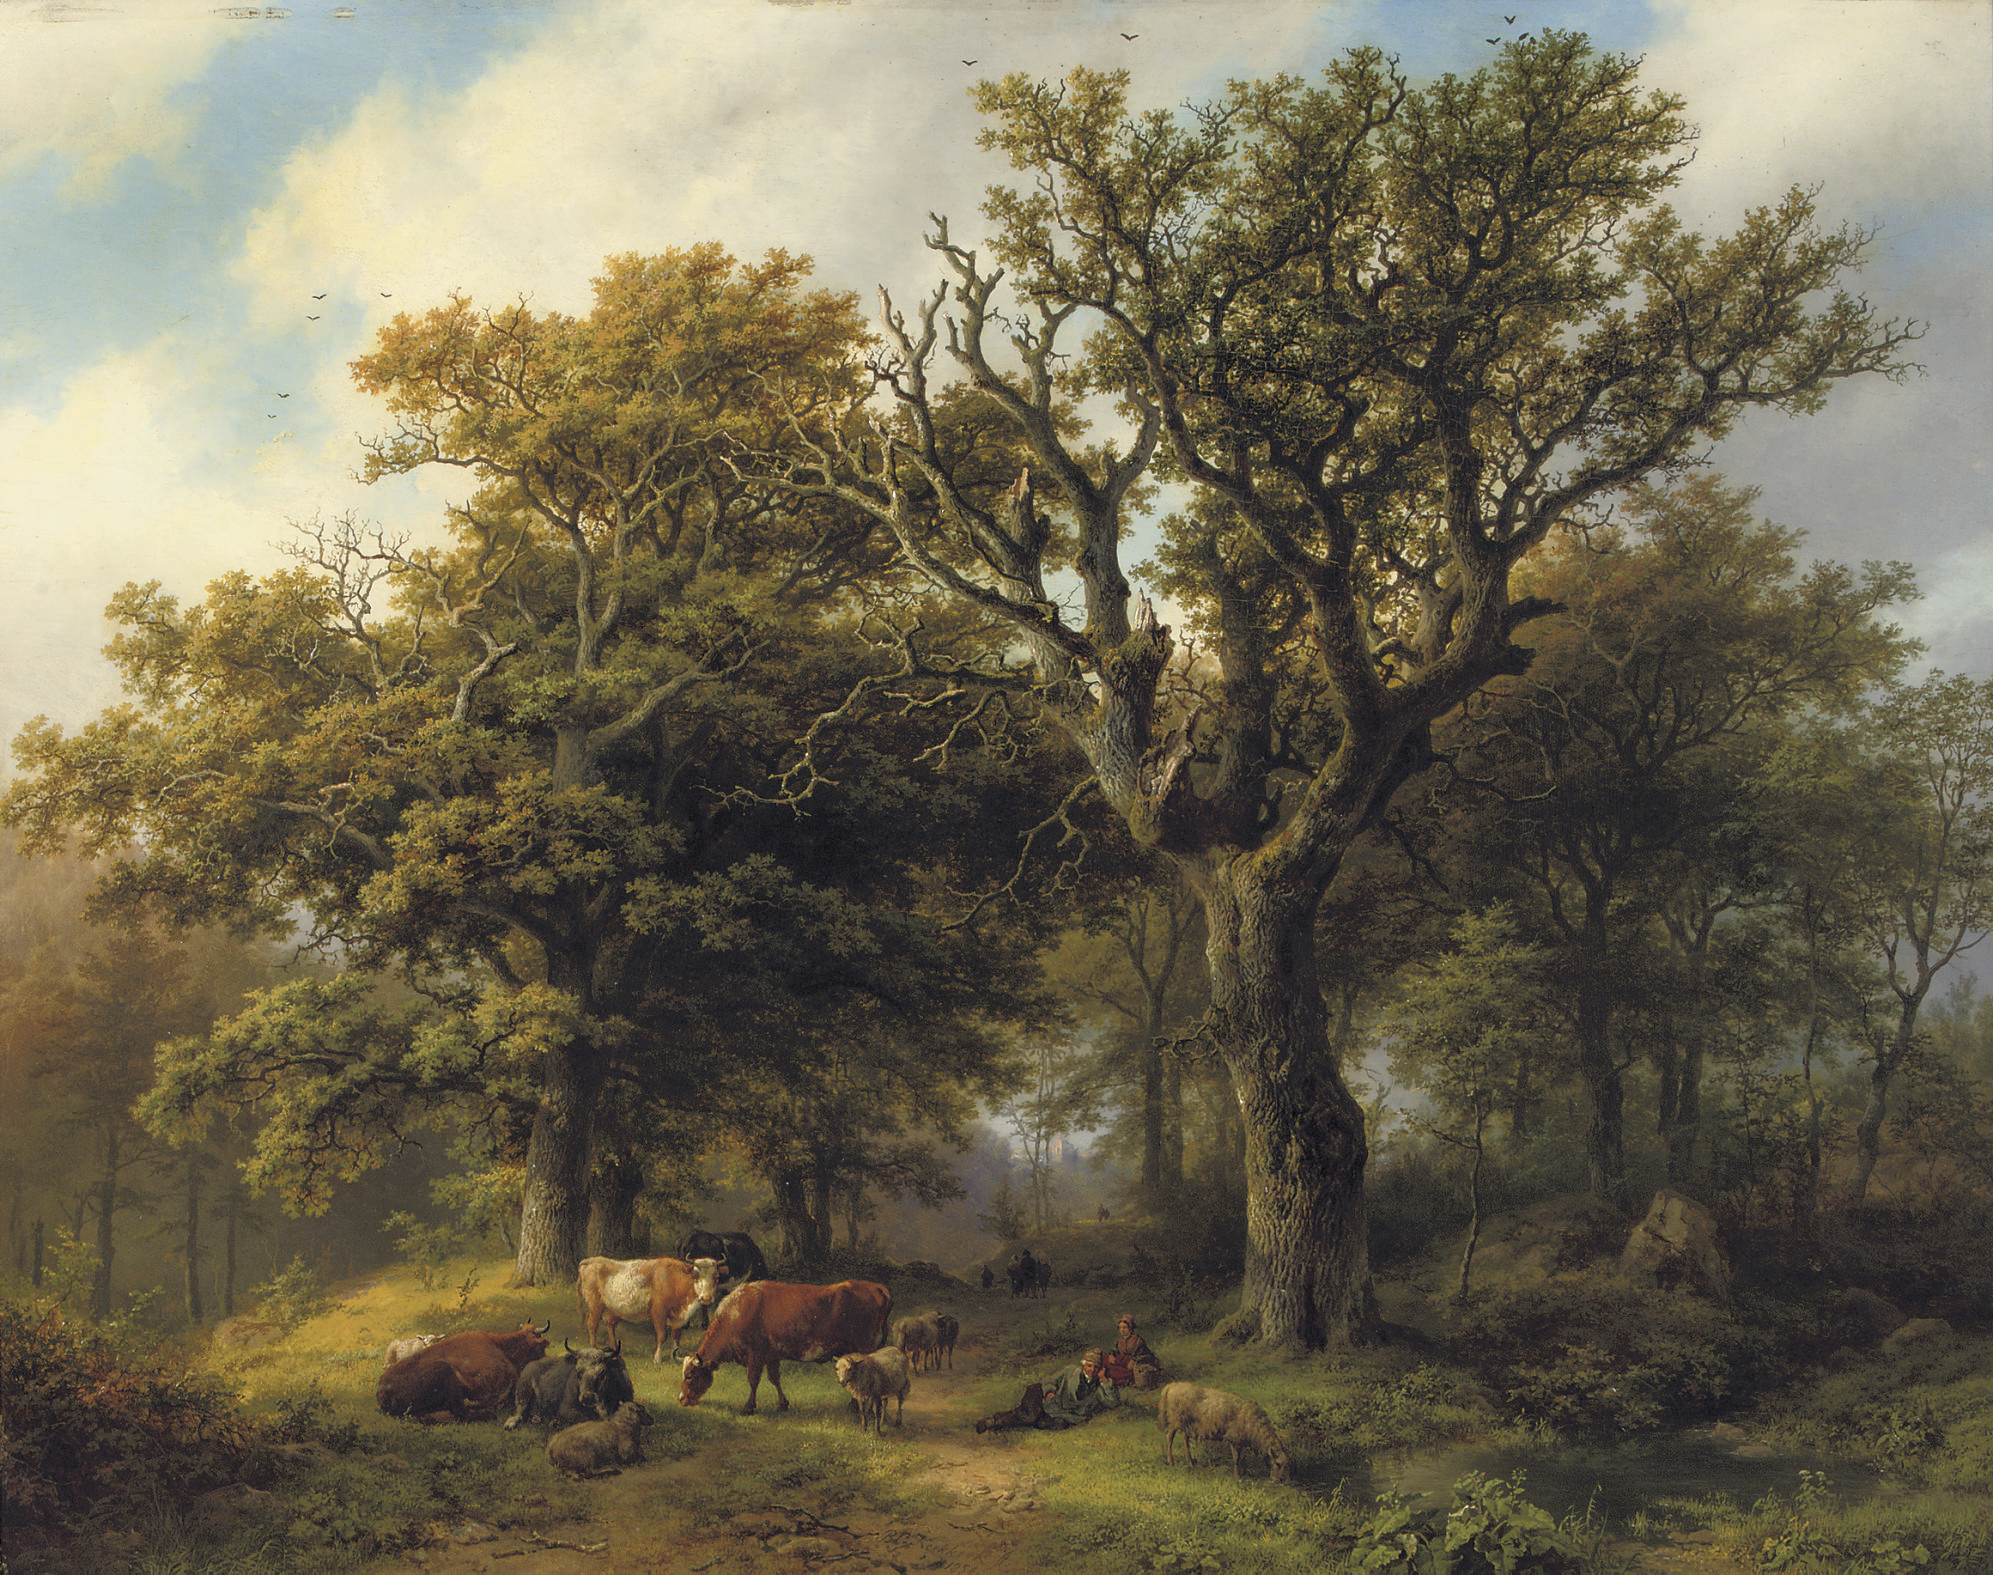 Een Boomrijk landschap met koeiyen, en schapen bij Middagstond: a herdsman and his cattle resting under an oak tree, a ruin in the distance